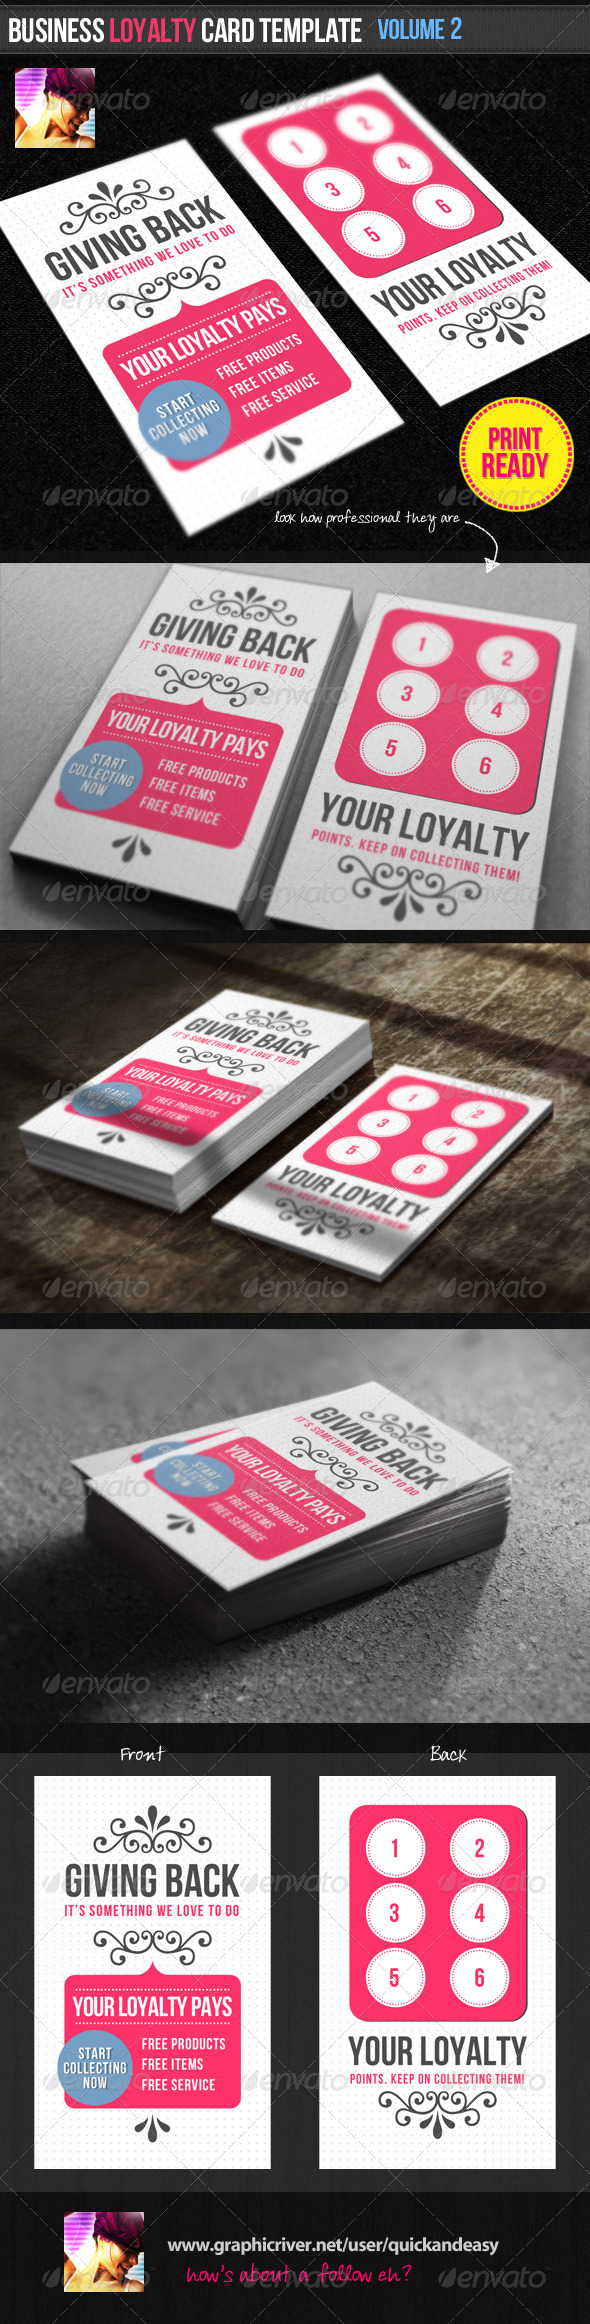 Business Loyalty Card Template Vol.2 - Loyalty Cards Cards & Invites